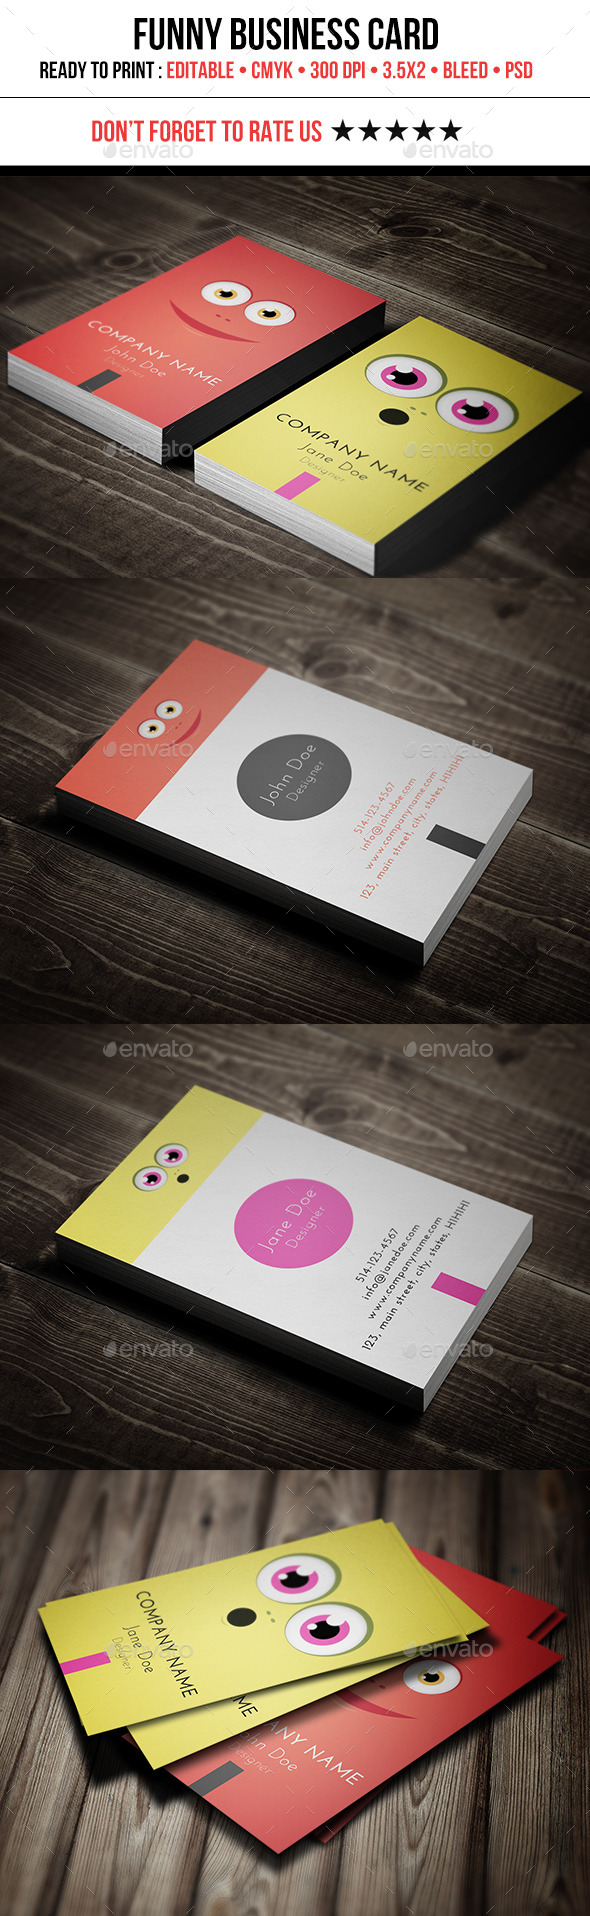 GraphicRiver Funny Business Card 11204503